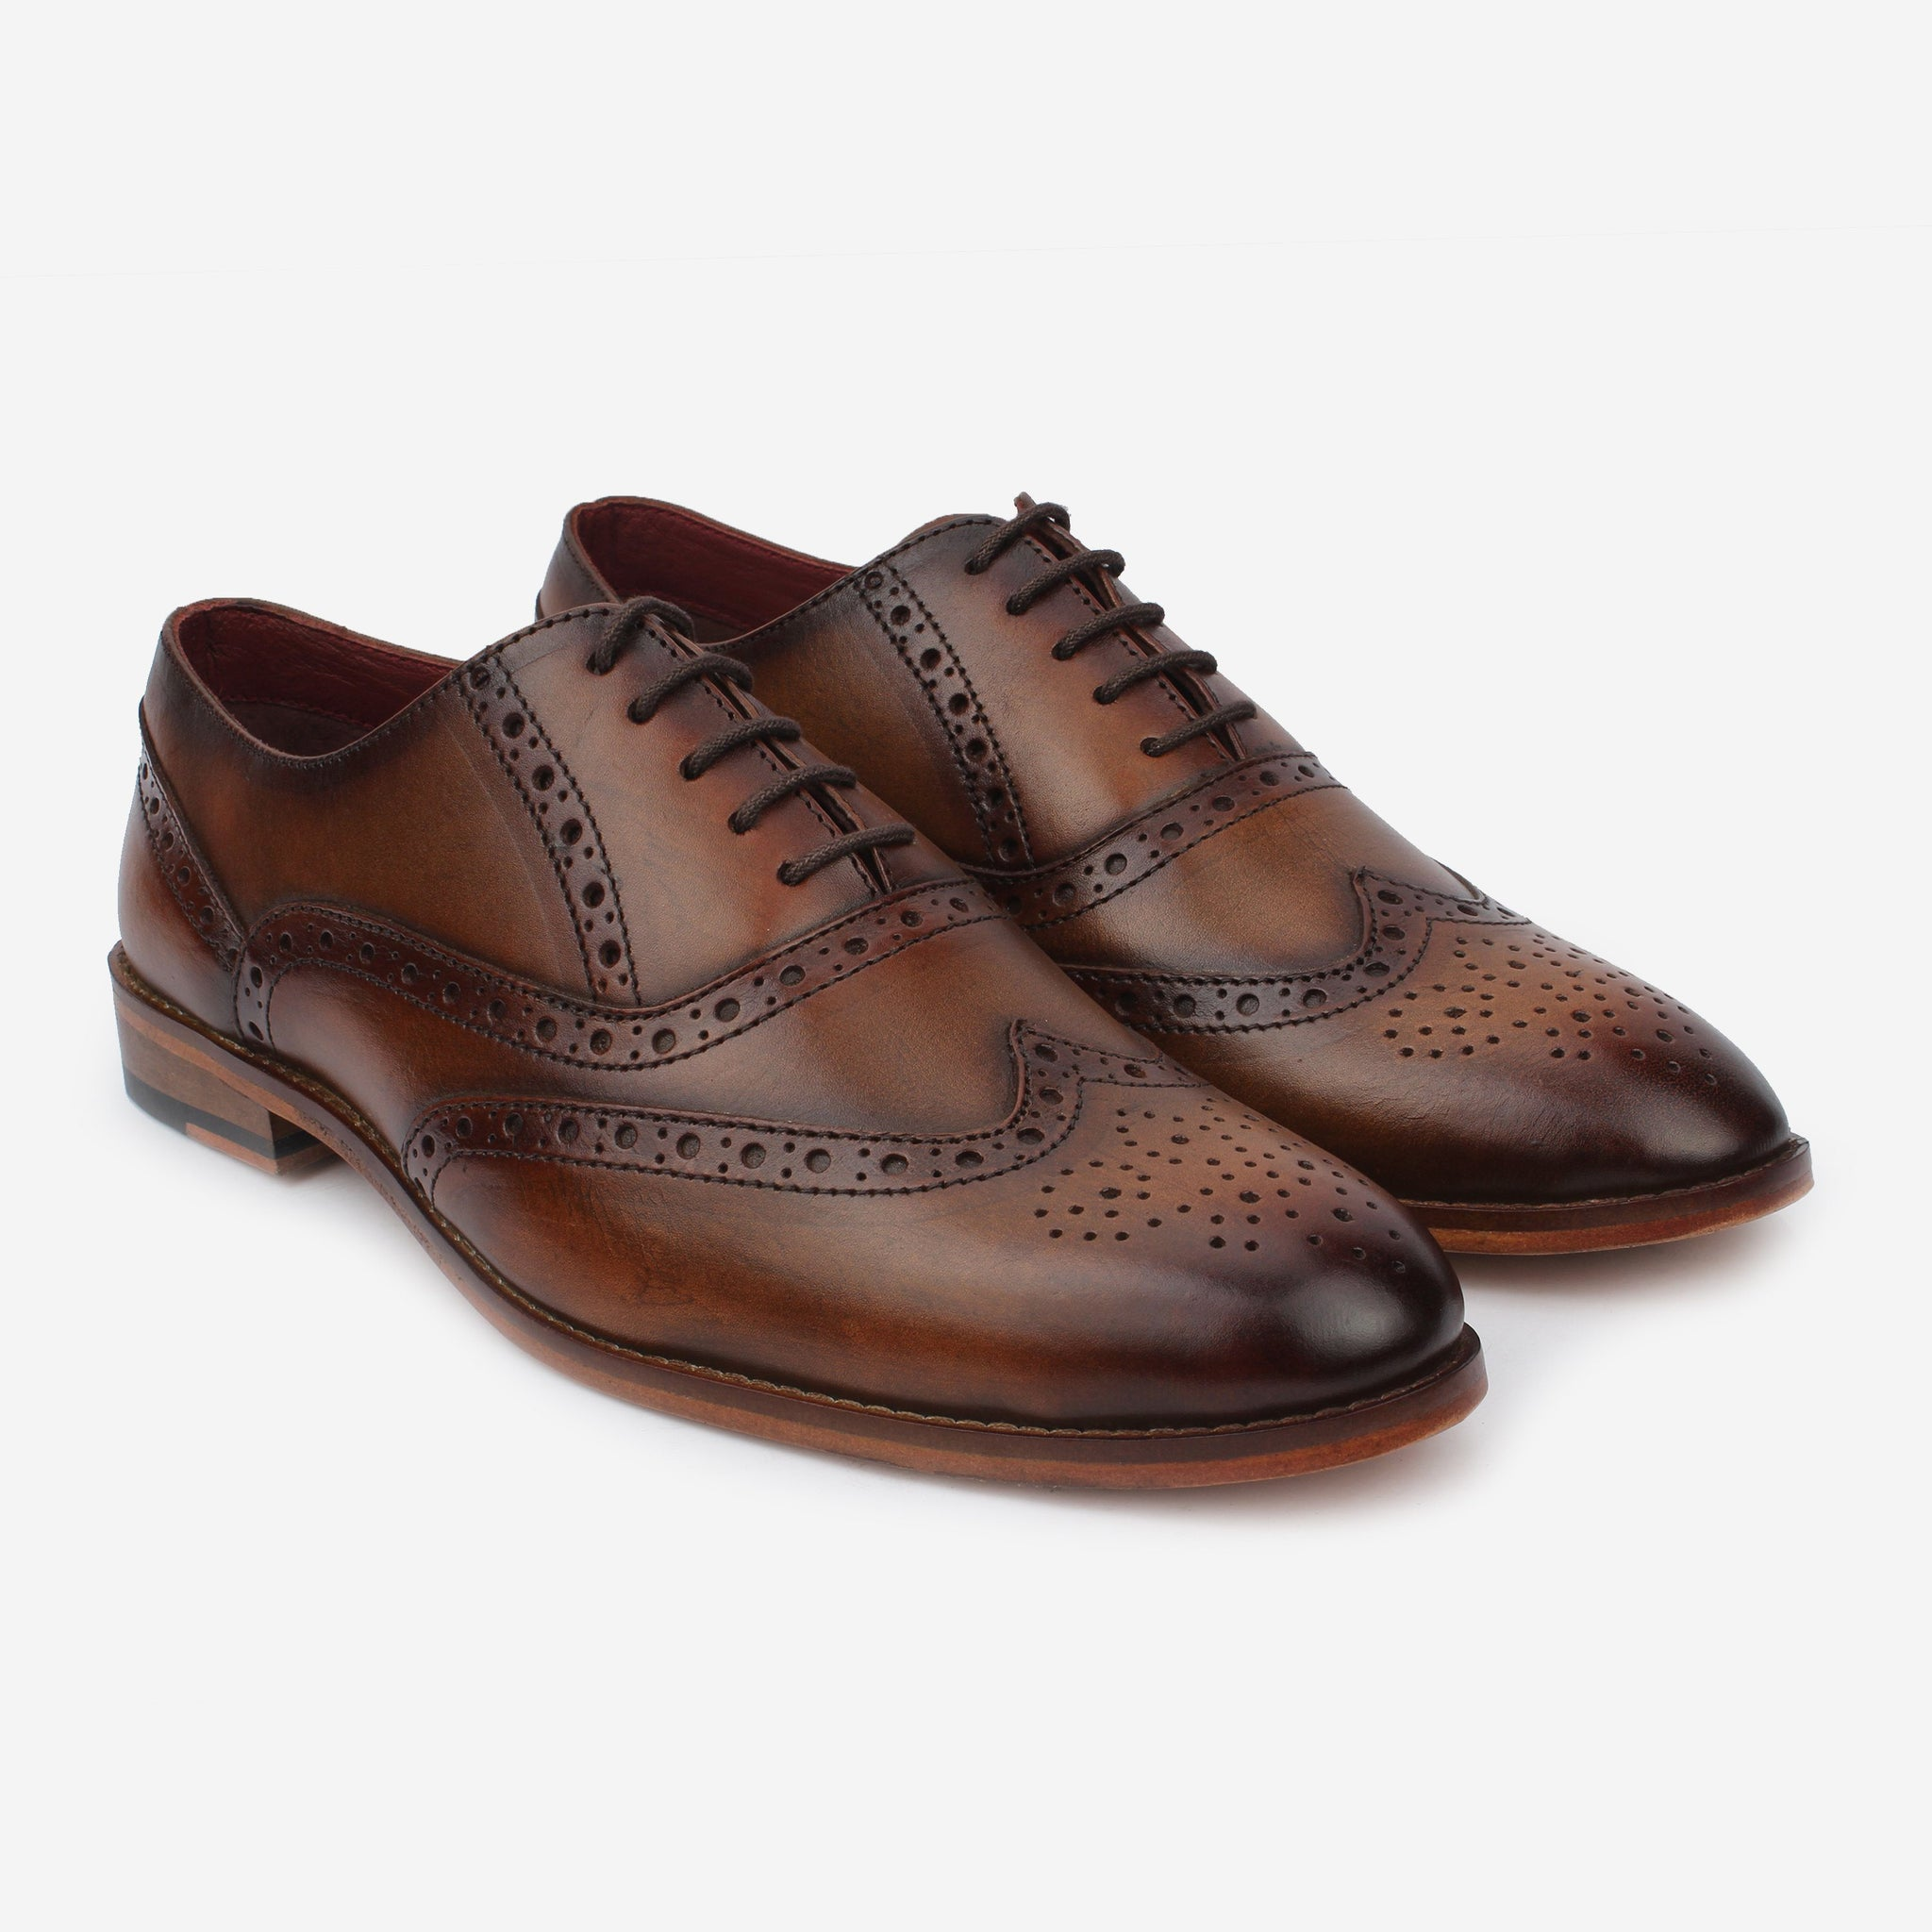 Castor Wingtip Oxford Brown Thebootsco